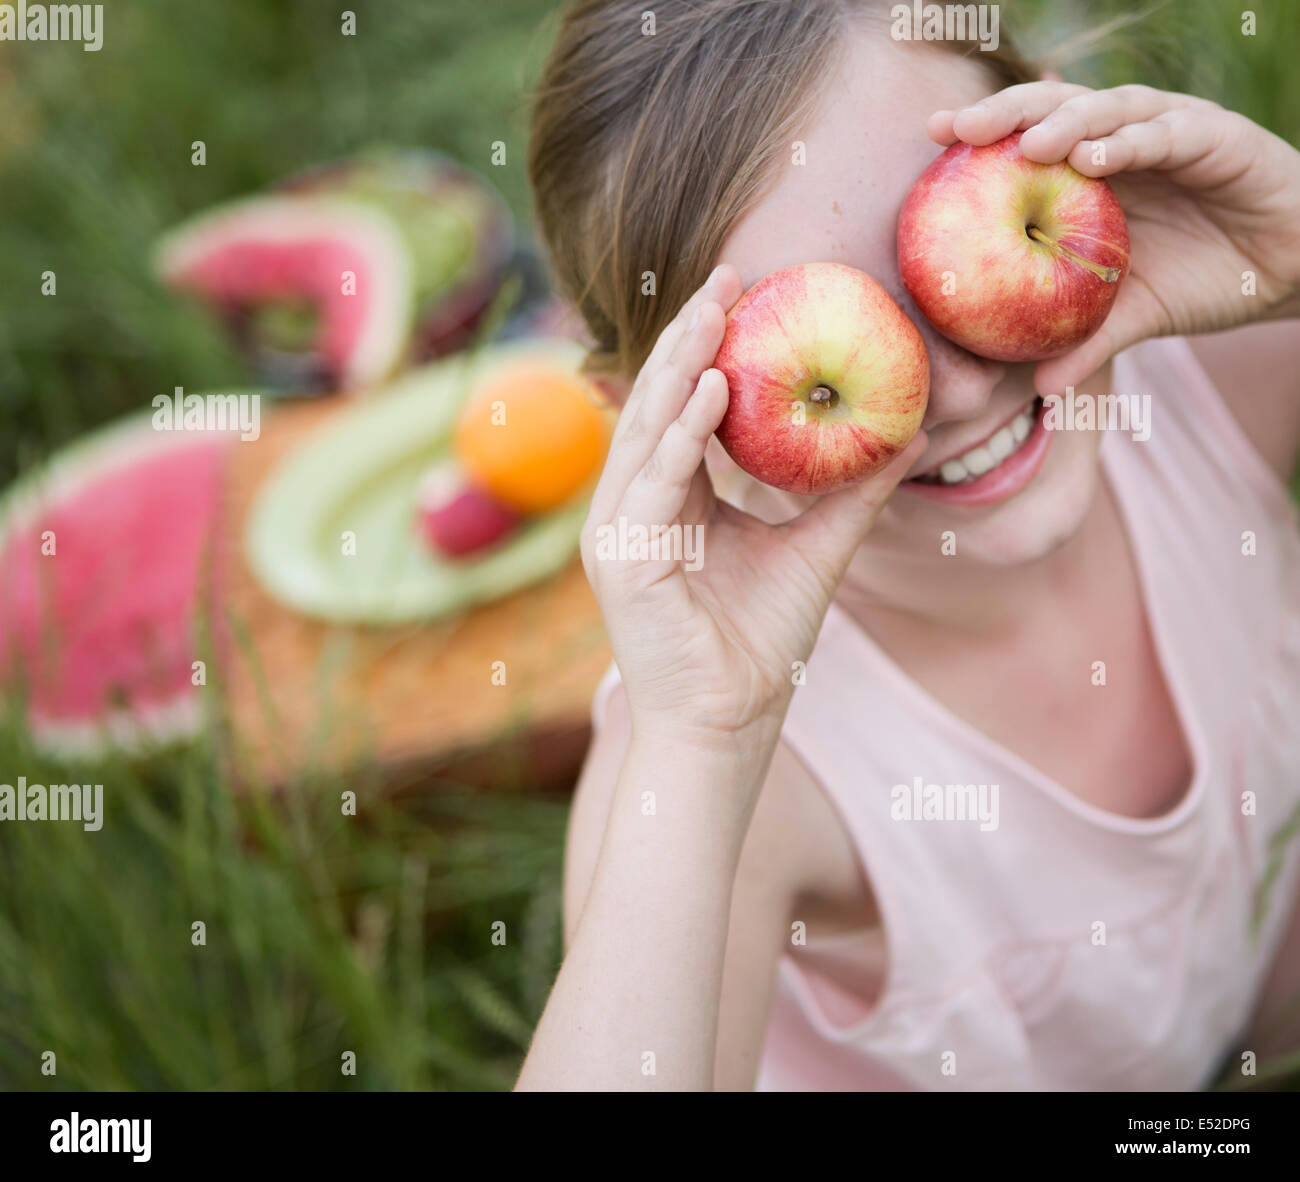 A girl holding two apples in front of her eyes - Stock Image